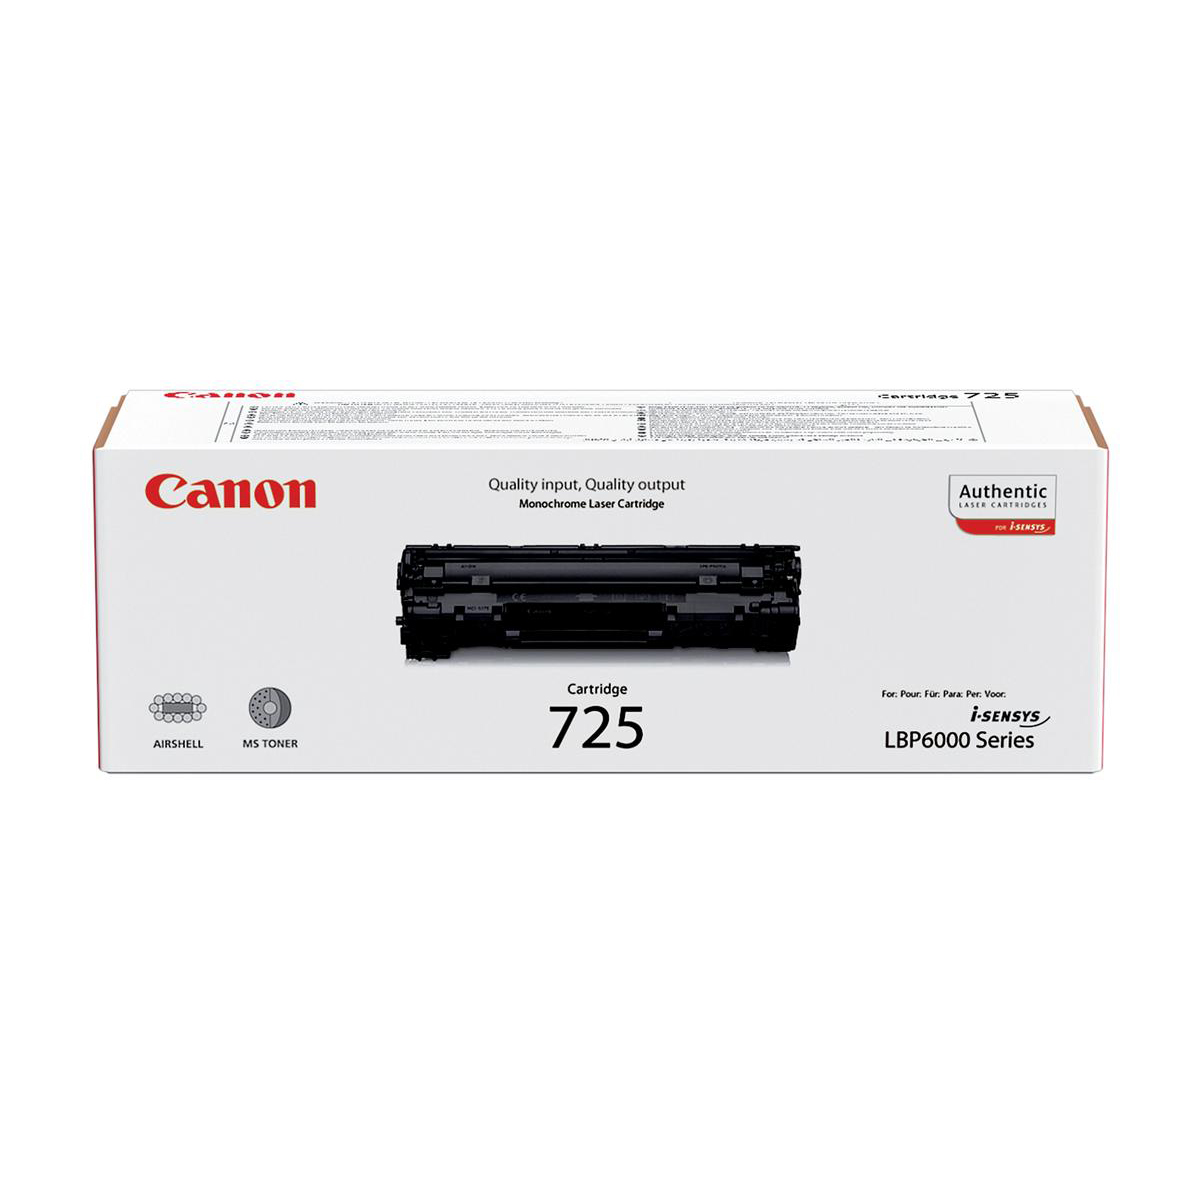 Canon CRG-725 Laser Toner Cartridge Page Life 1600pp Black Ref 3484B002